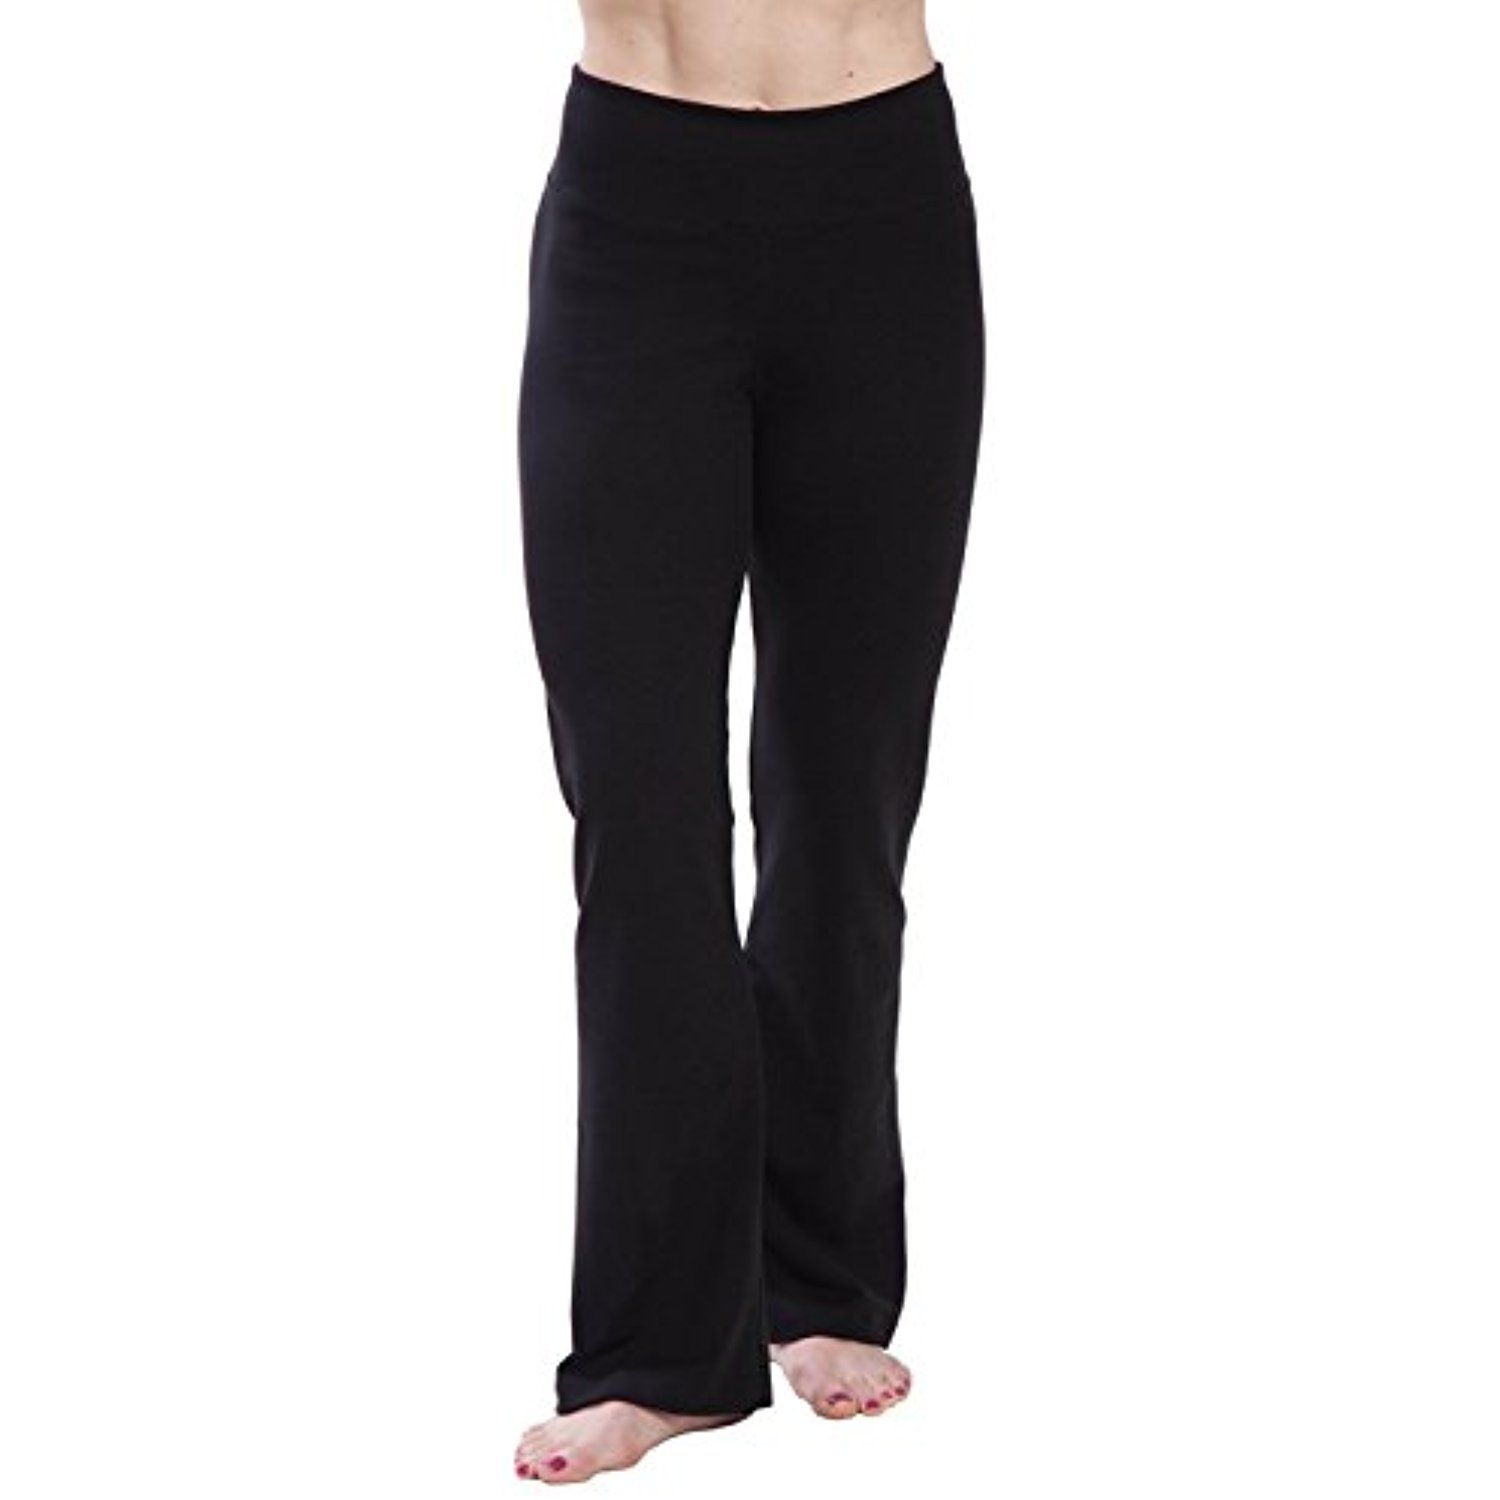 8e7af98829 American Fitness Couture Womens Opaque Tummy Slimming Fold-Over High Waist  Bootleg Yoga Pant *** Visit the image link more details.